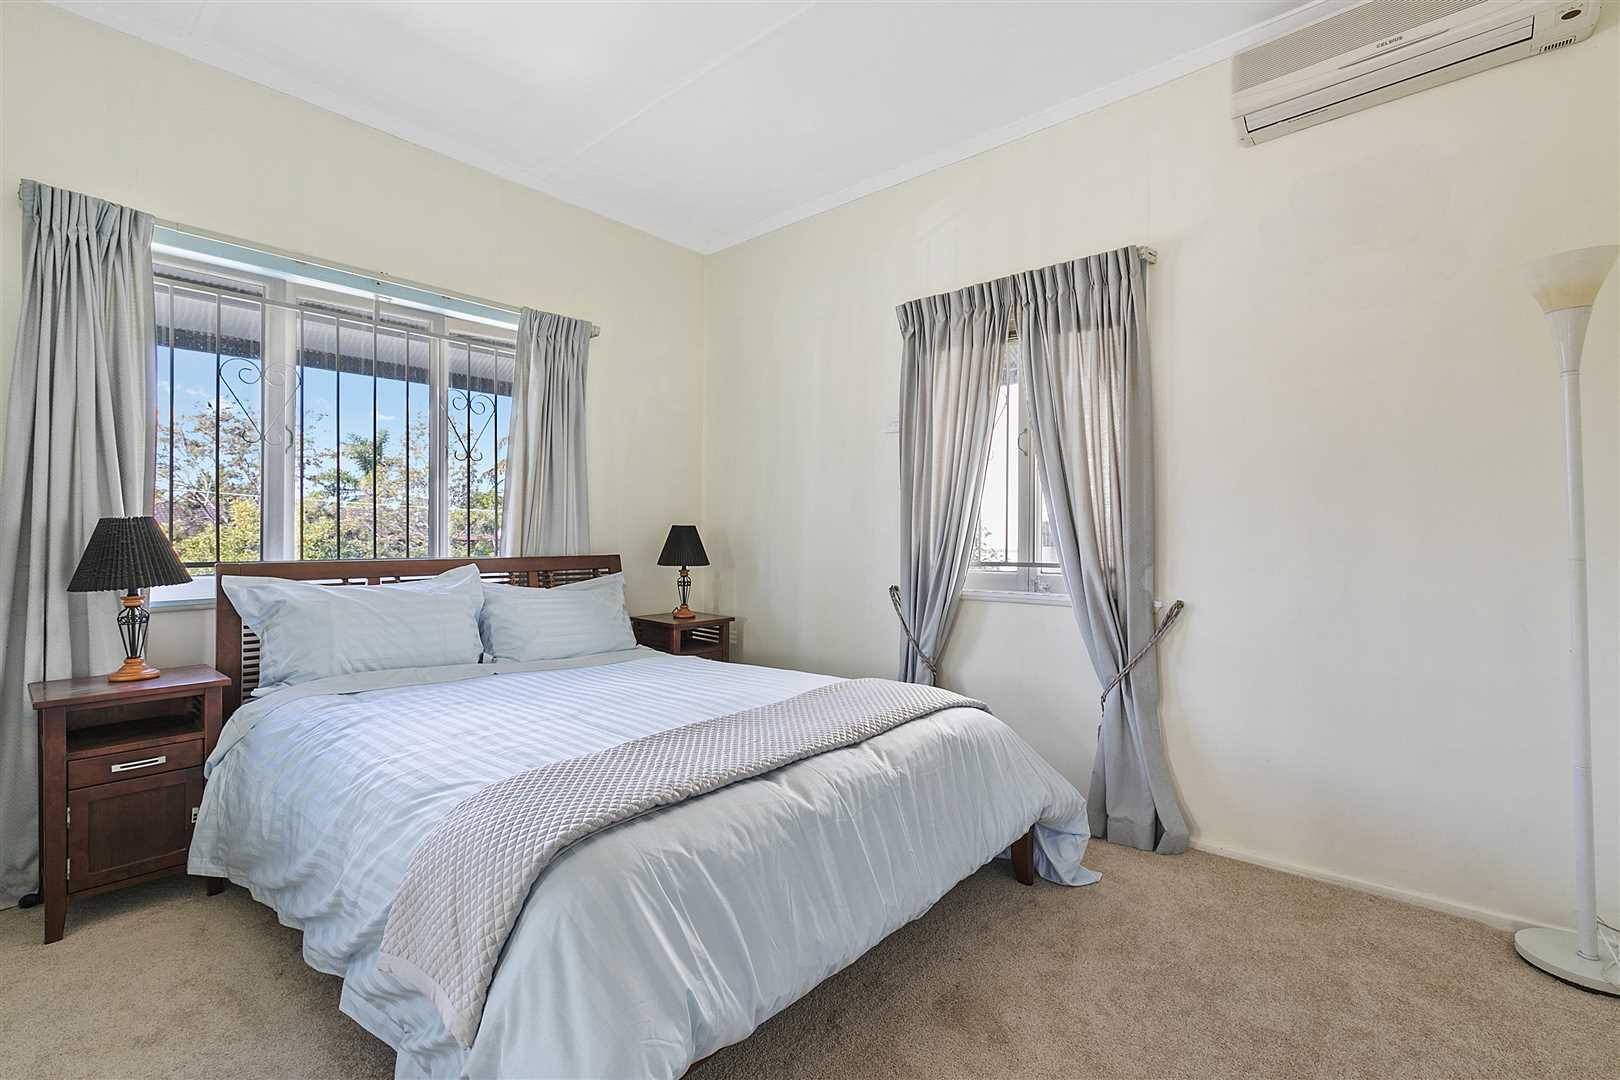 Bedroom 1 - air-con, builtin robes